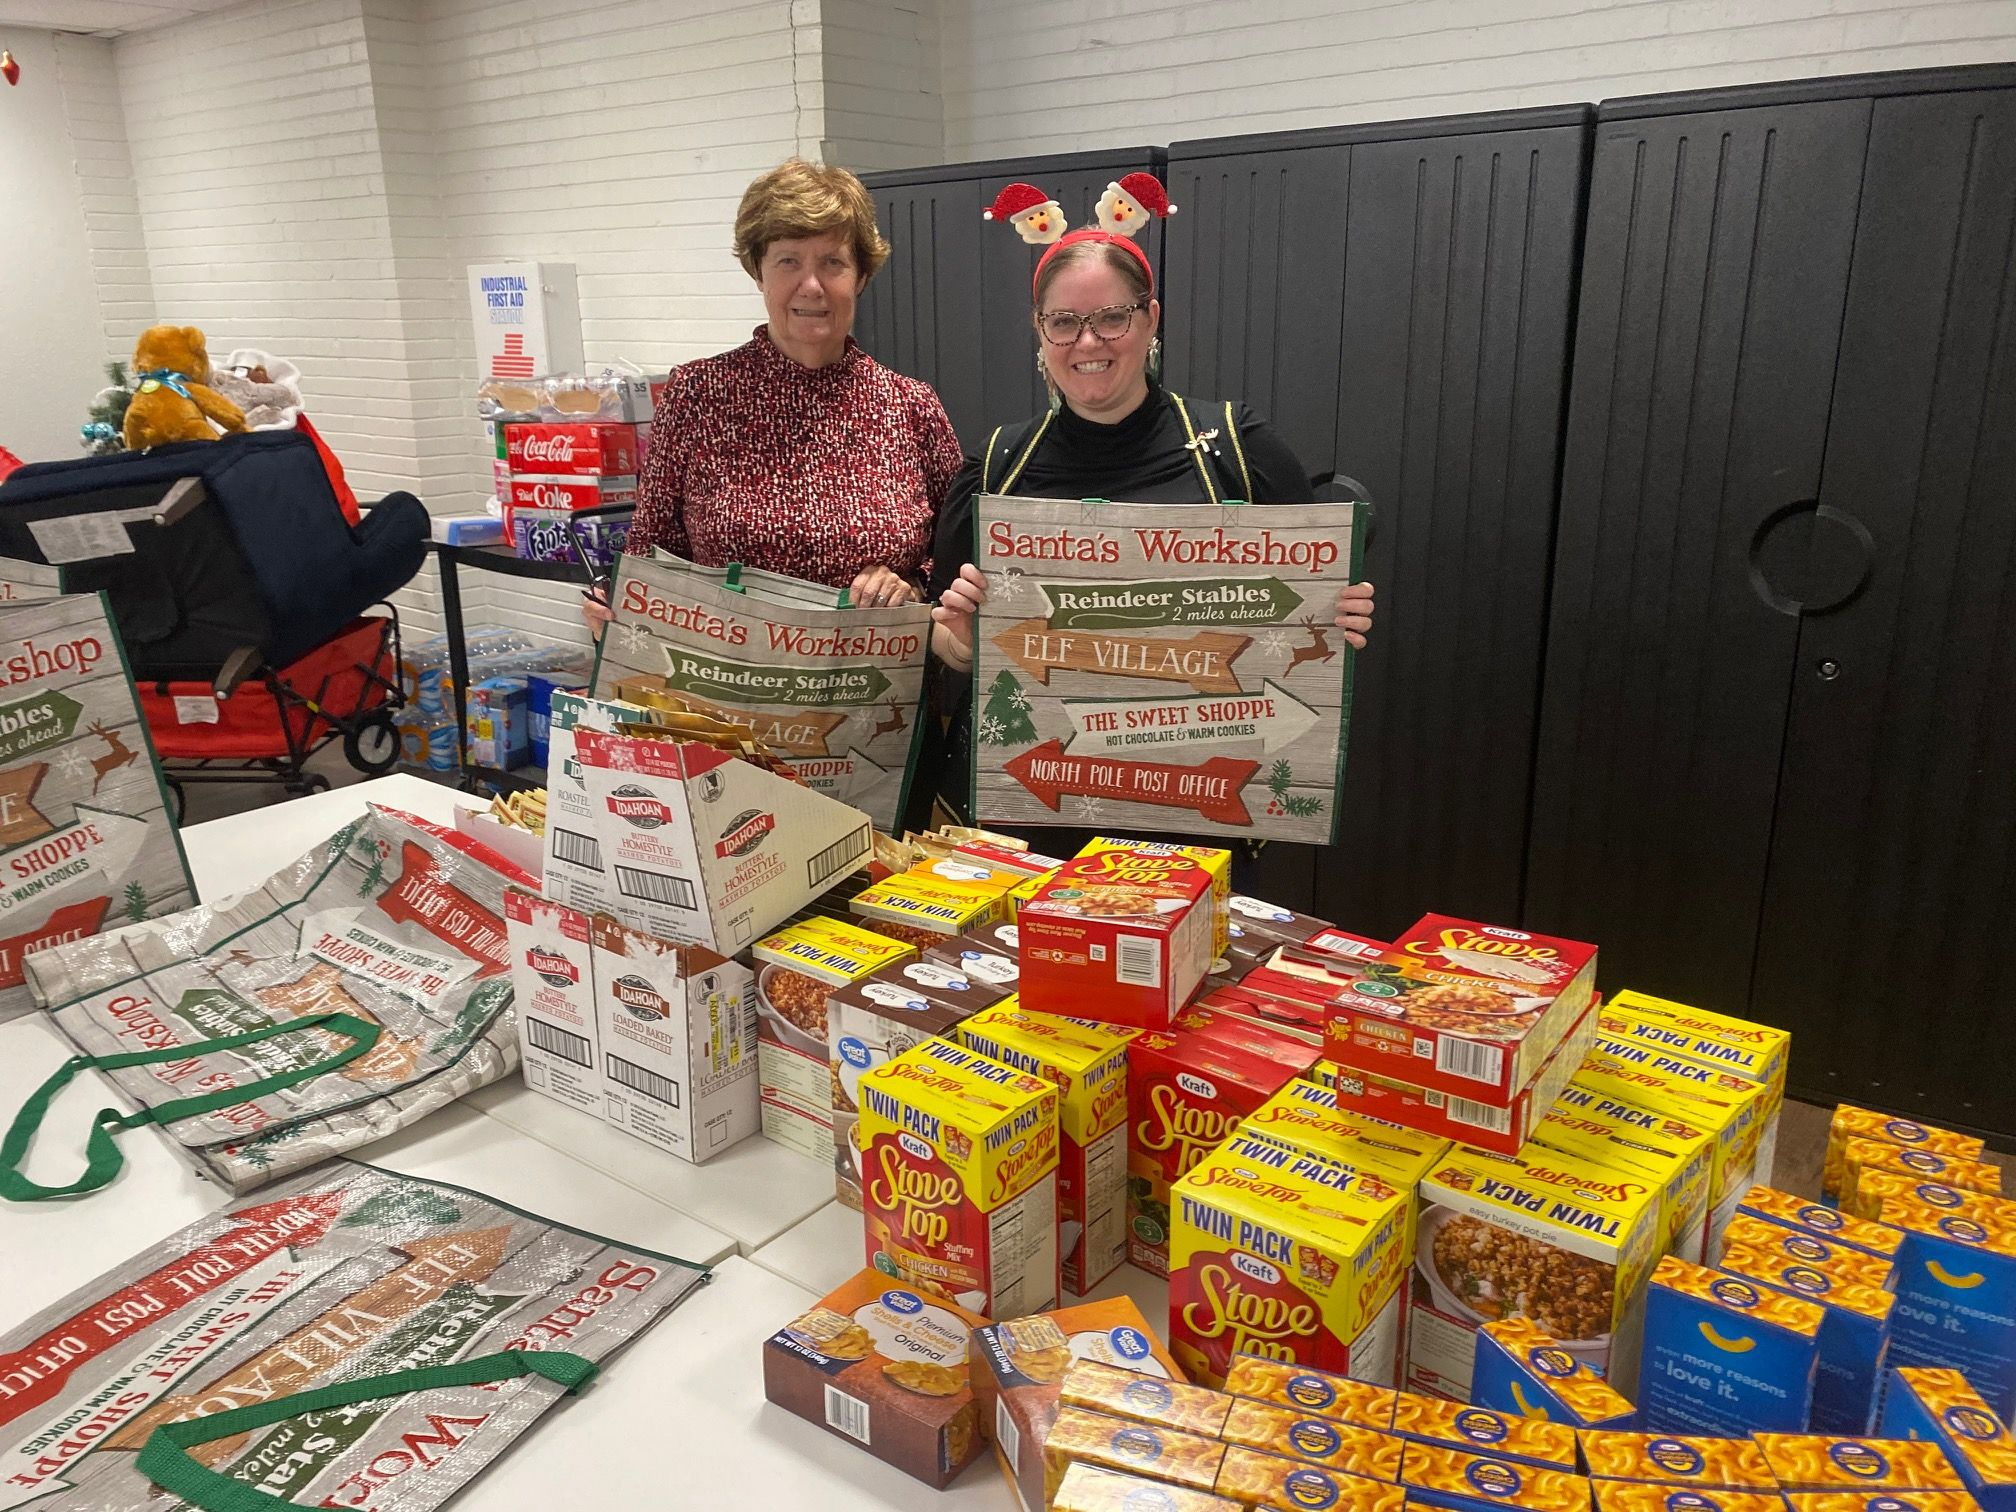 Two volunteers stand behind several boxes of food